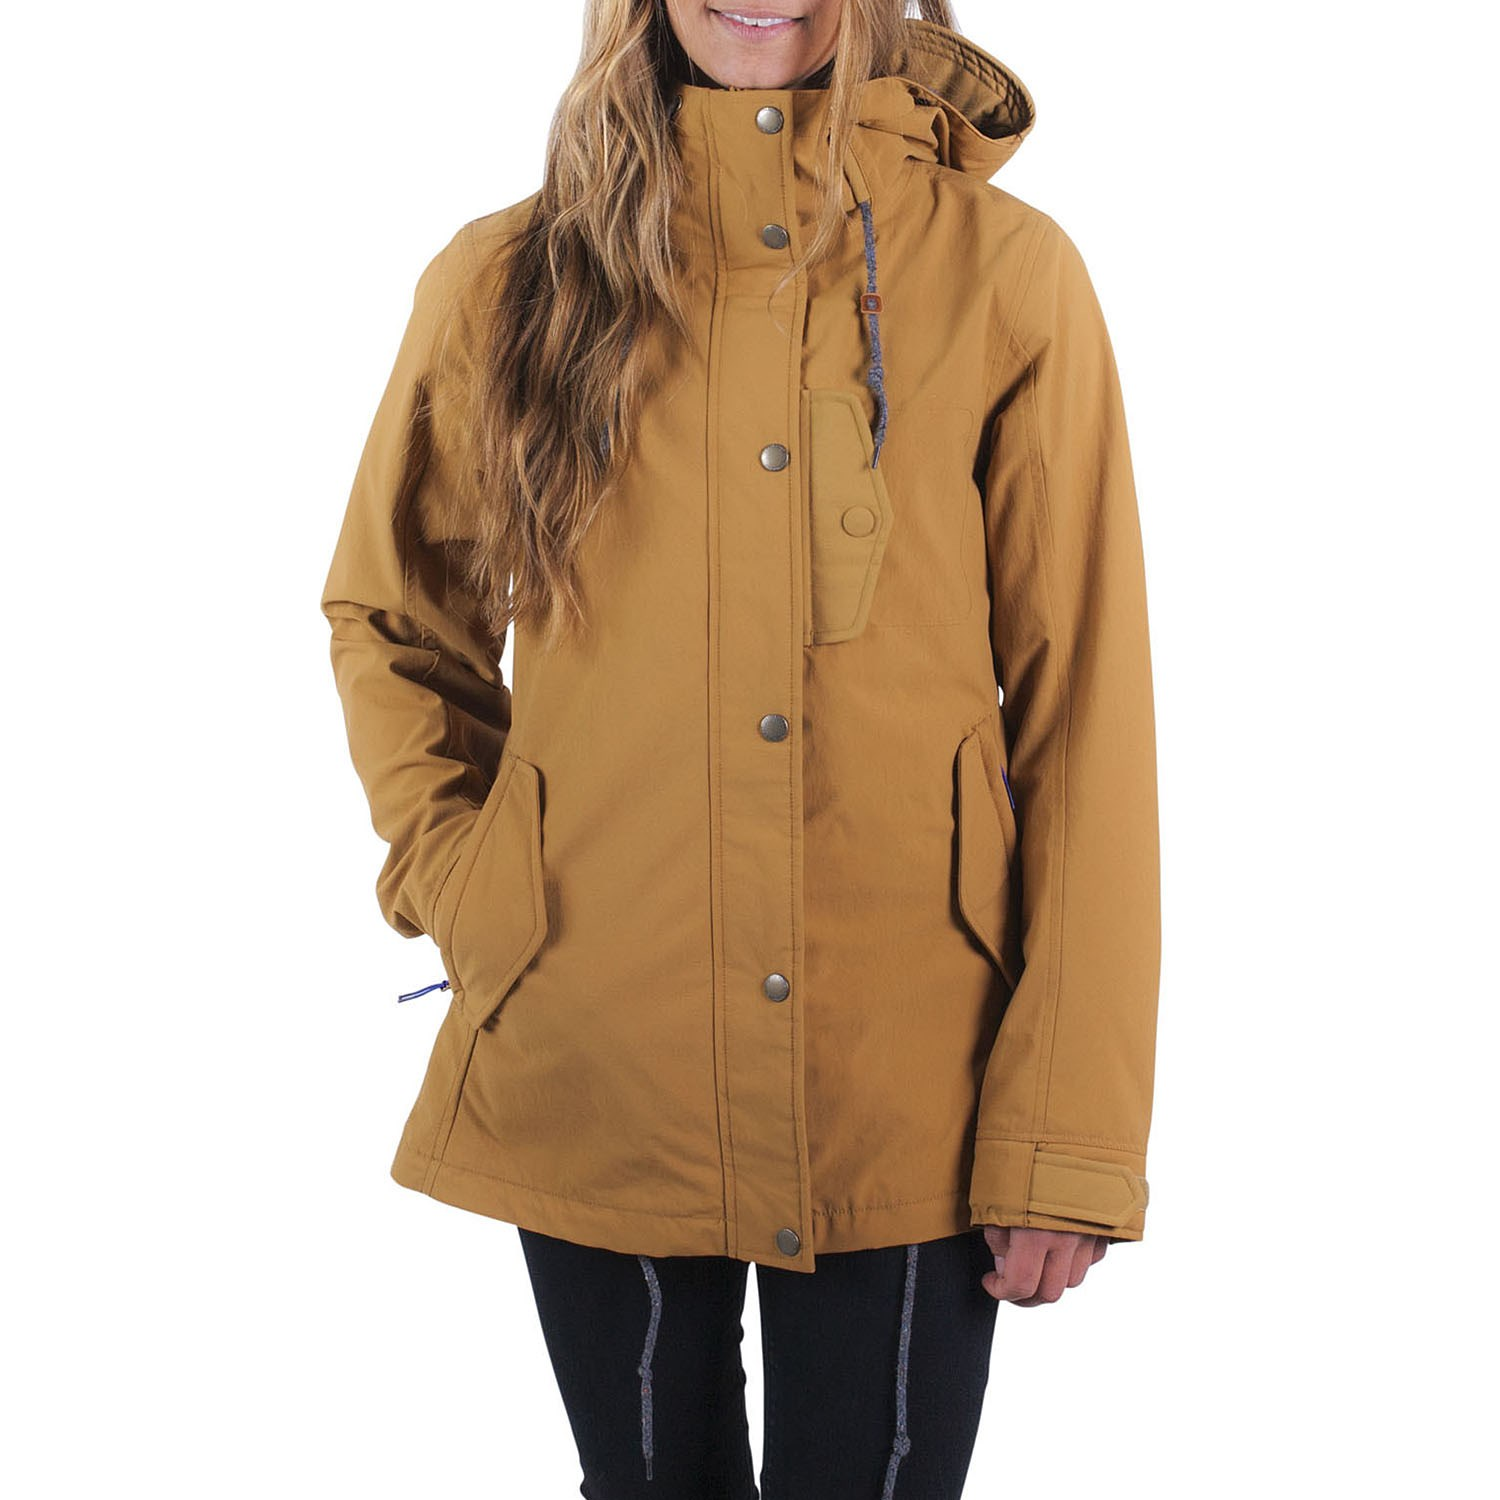 Holden Hana Jacket - Women's | evo